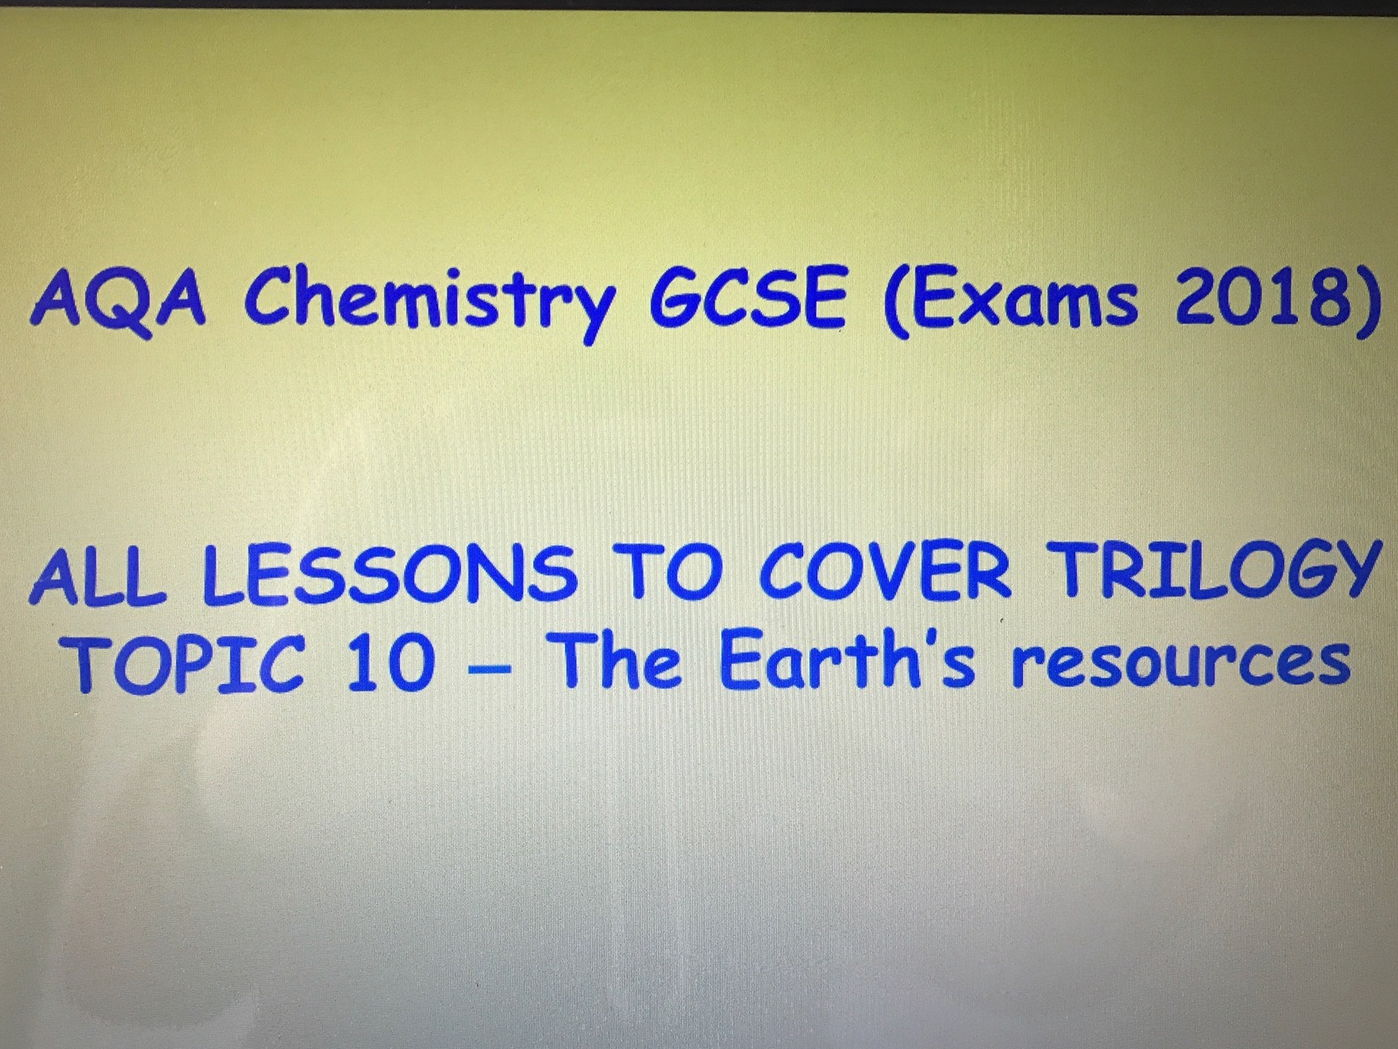 AQA Chemistry New GCSE (Paper 2 Topic 5 - exams 2018) – The Earth's resources (4.10 - TRILOGY ONLY LESSONS)